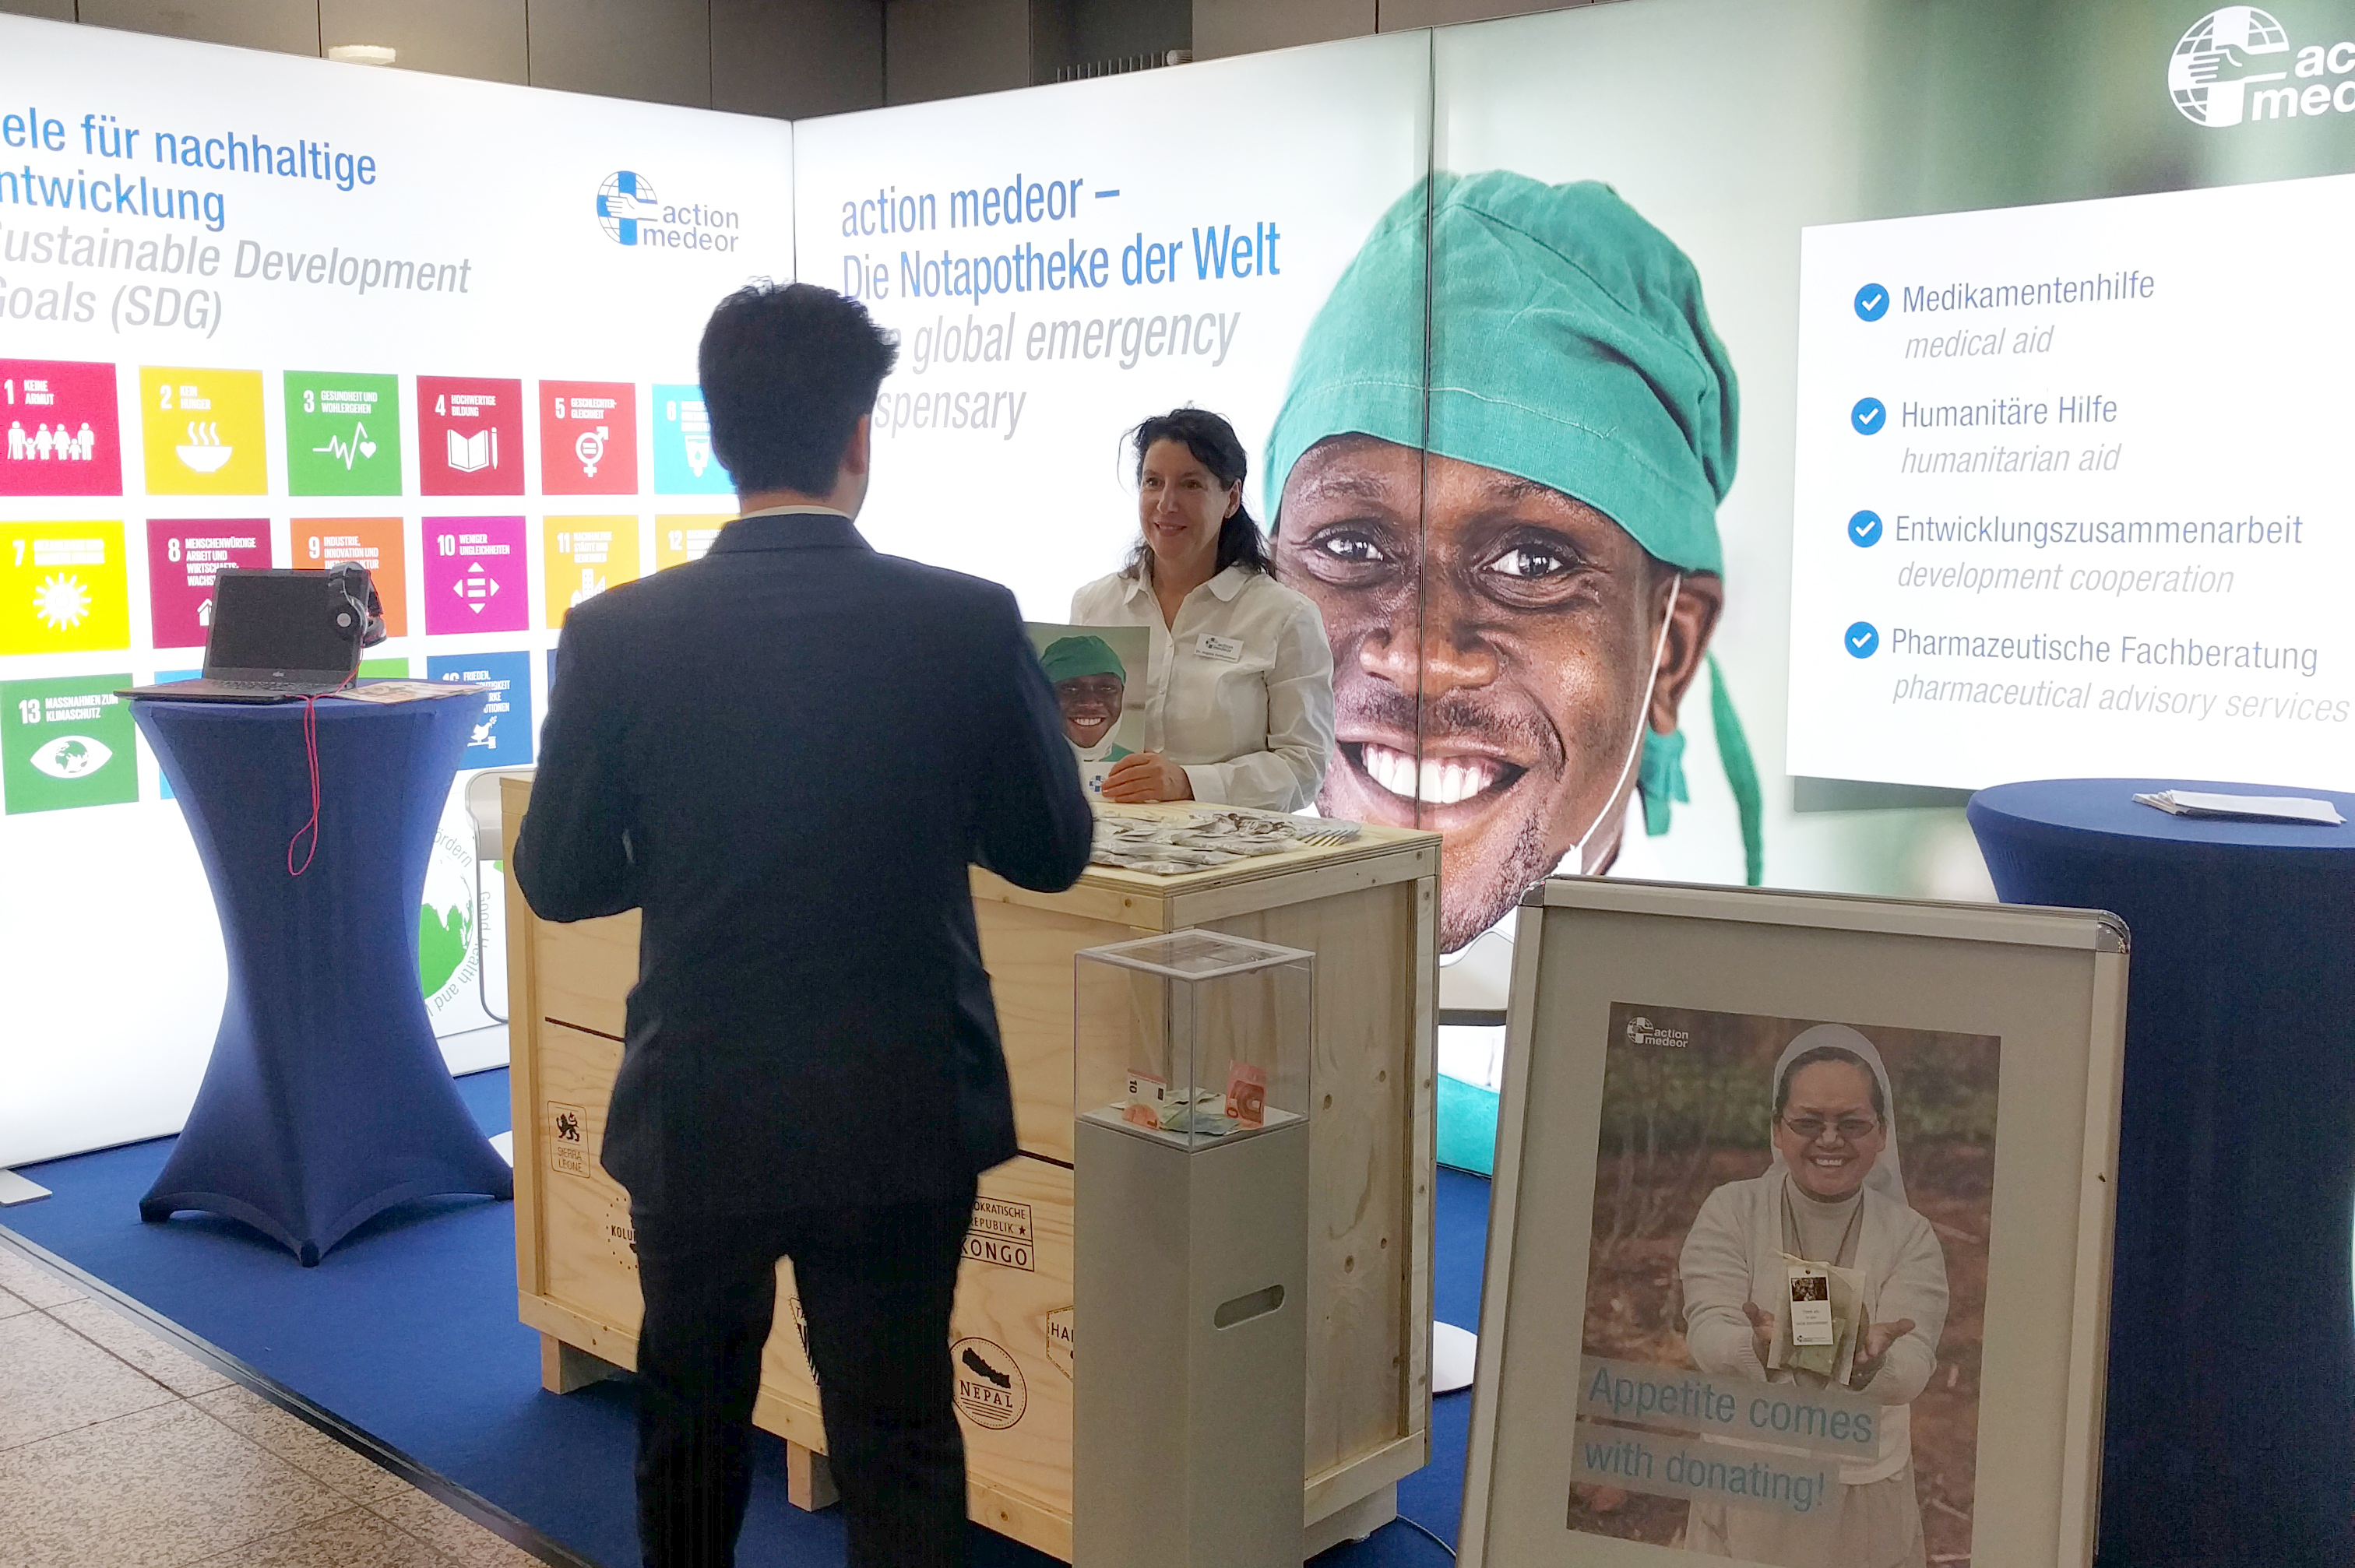 action medeor at the Medica in 2018